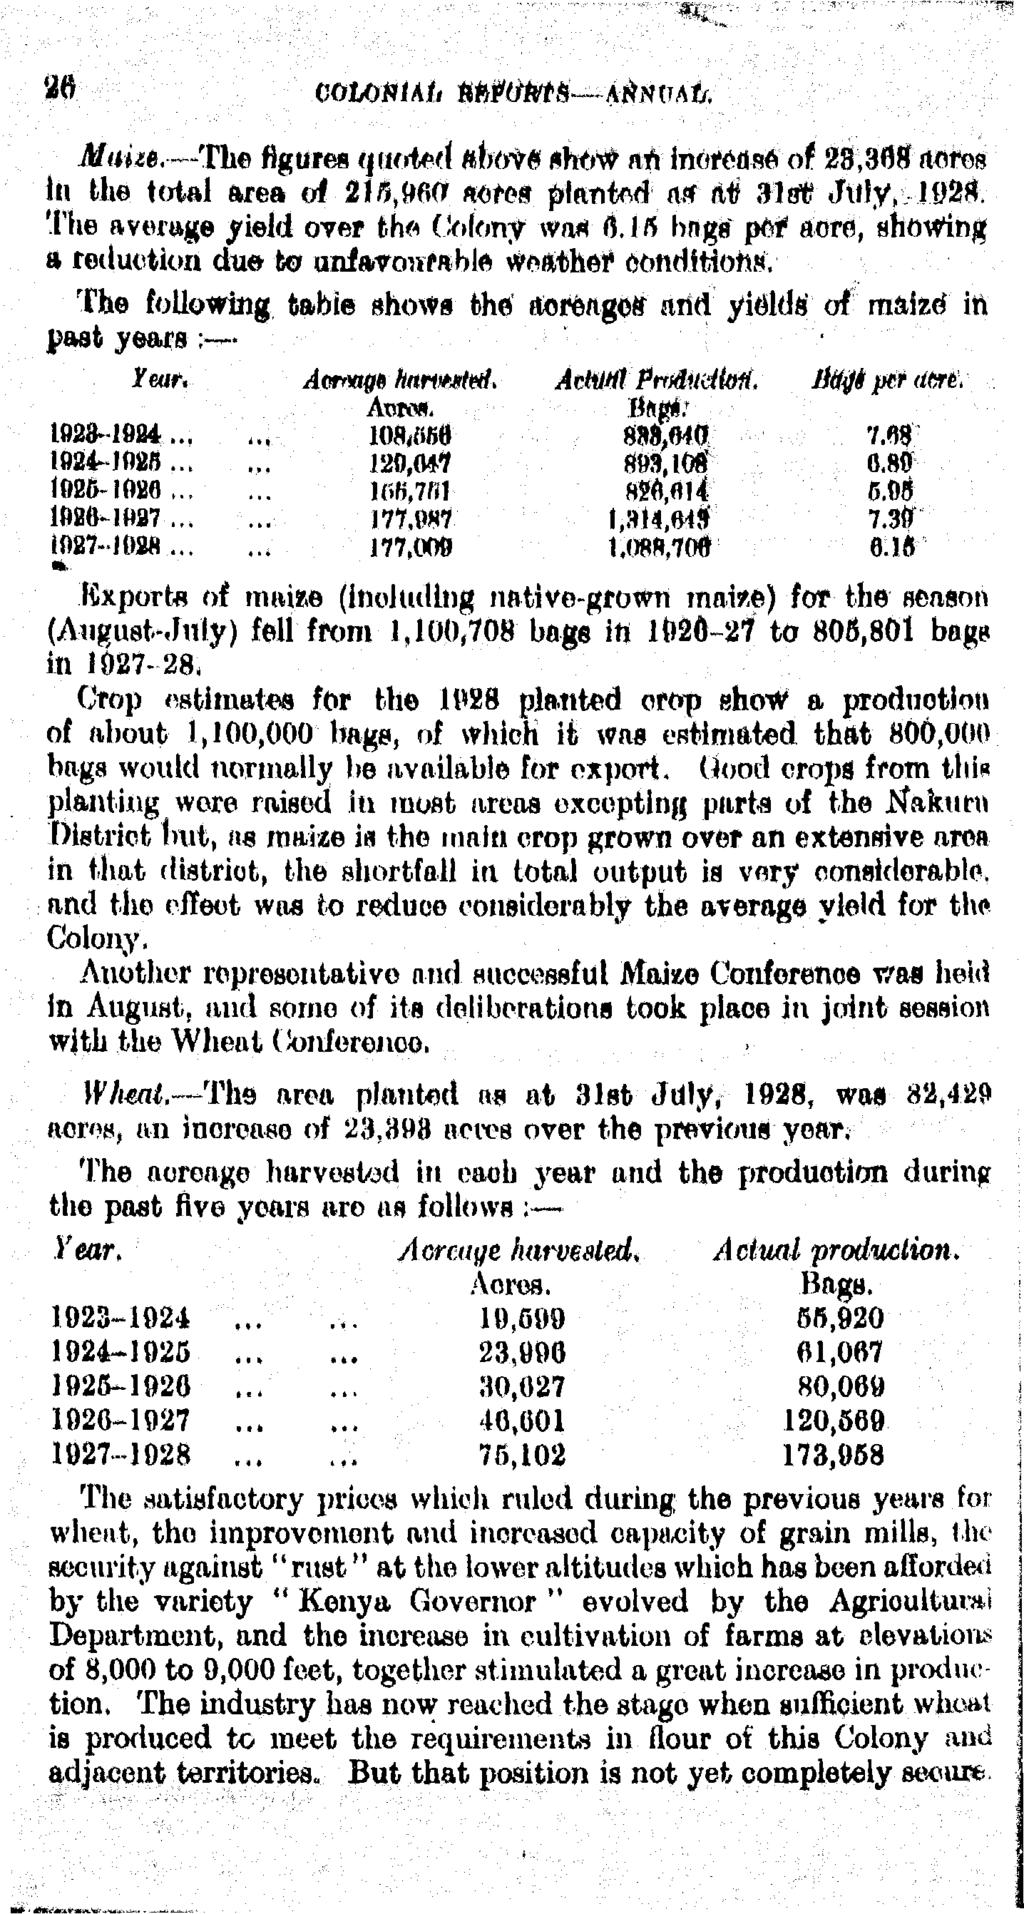 26 cohomalt M&fM&~~~A$nvAij, Mam. The figure* quoted above show art increase at 28,368 acres In the total area of 215,060 aefes jmaoted 1 a# &# 31.# July, 1928.